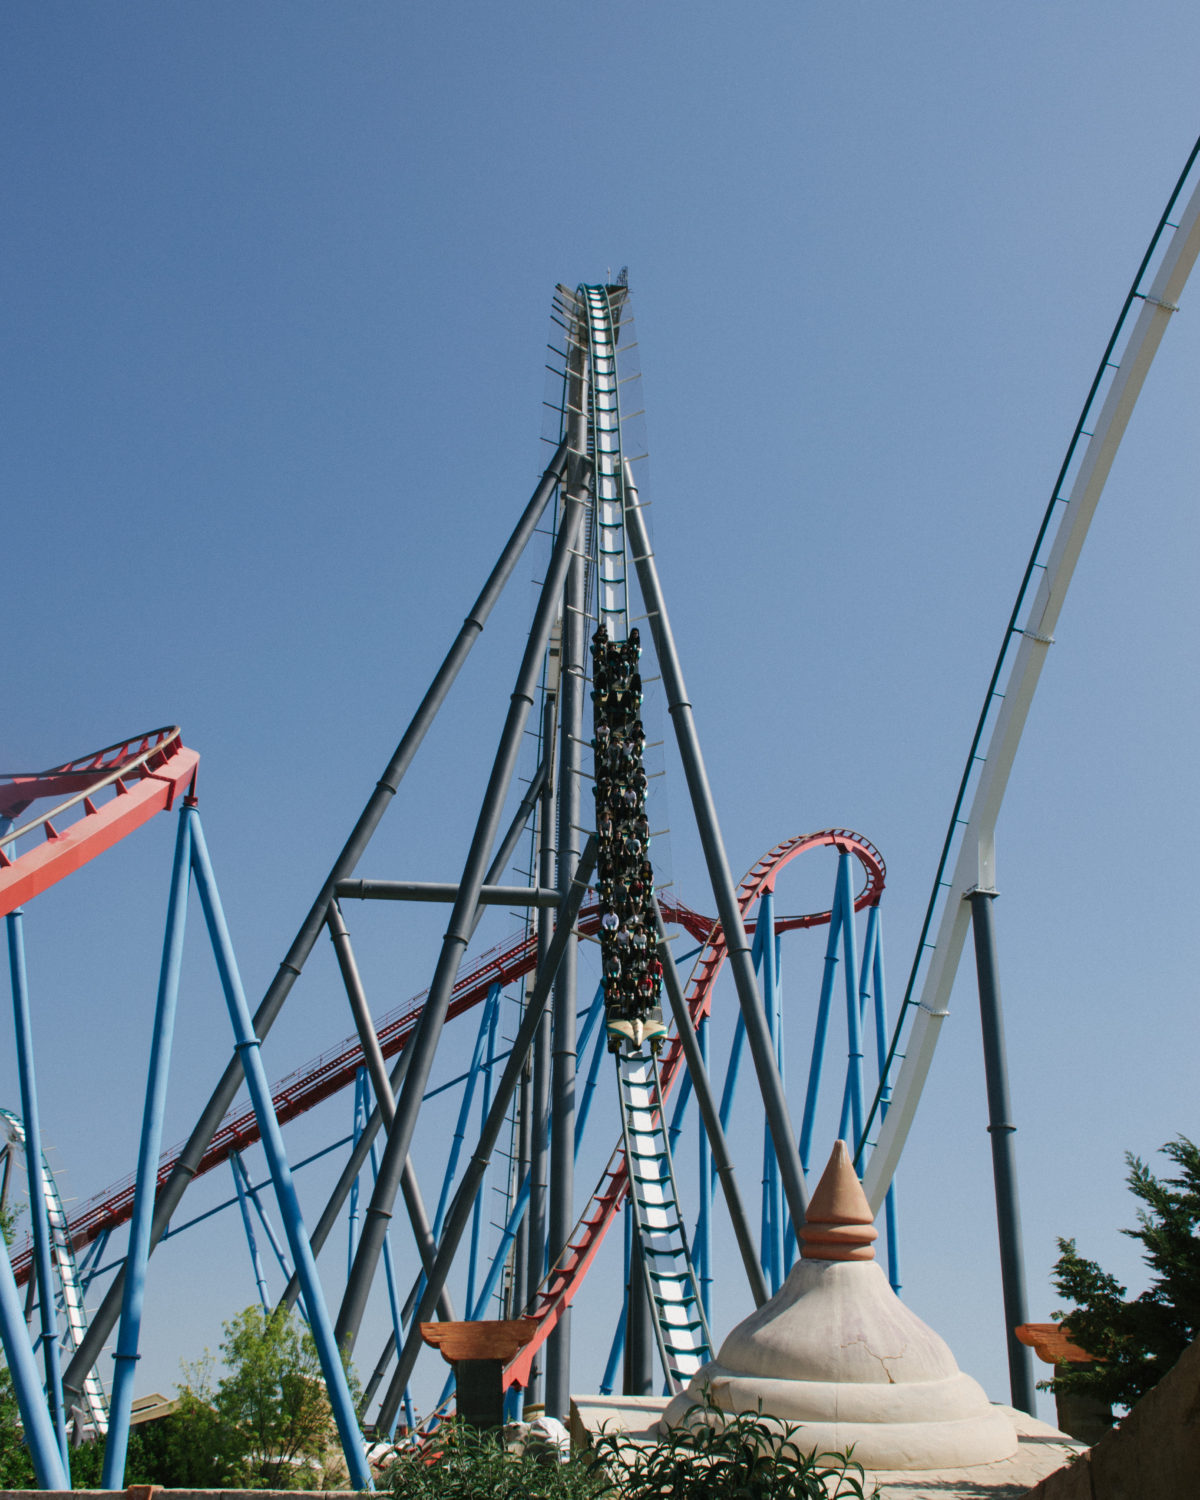 The water plunge on Shambala, Europe's tallest roller coaster.